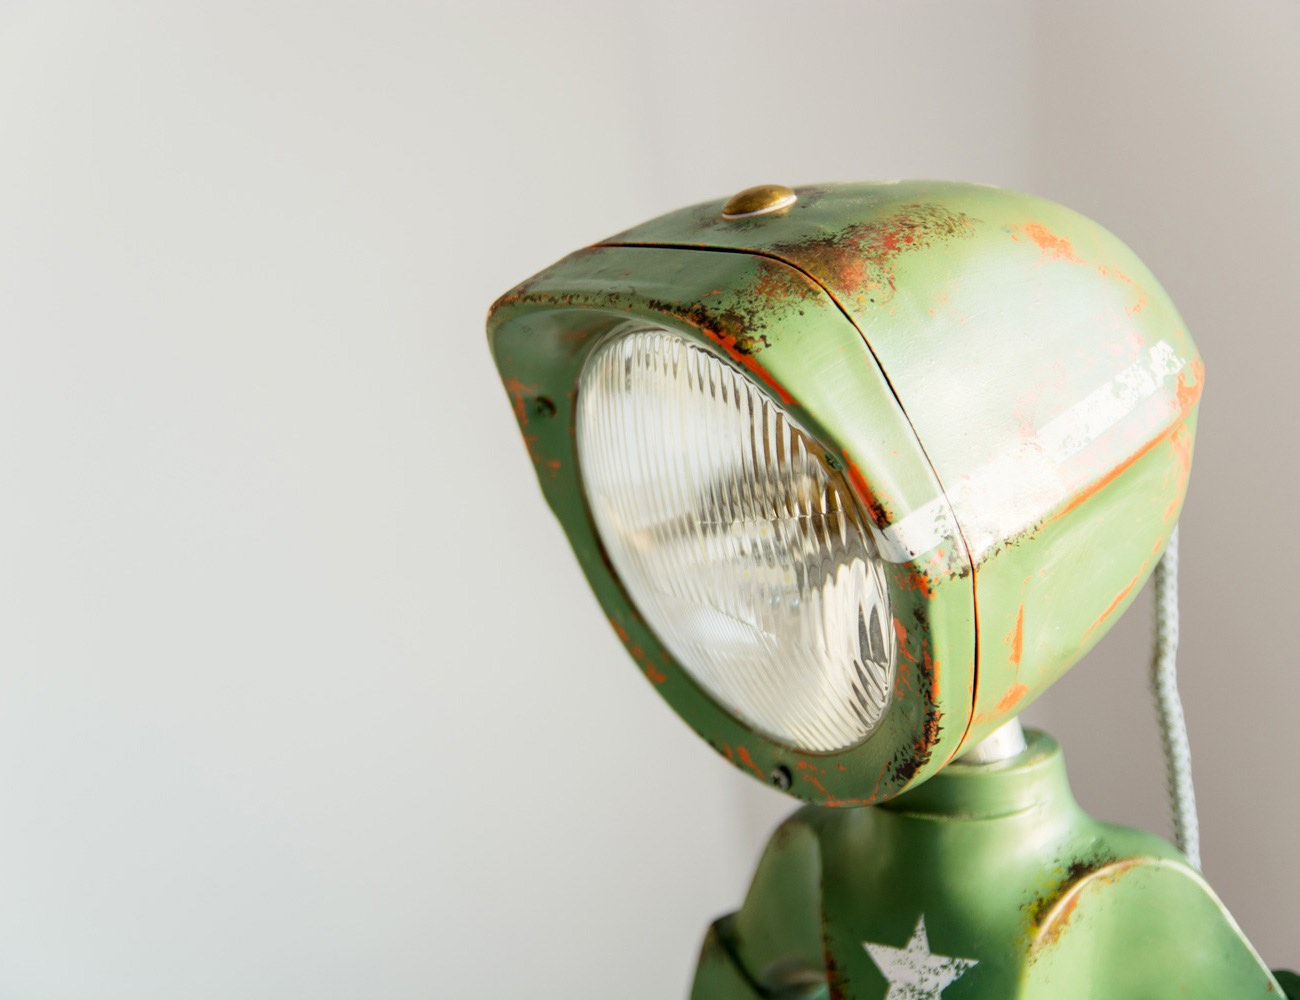 The Lampster – A Lamp with Attitude!